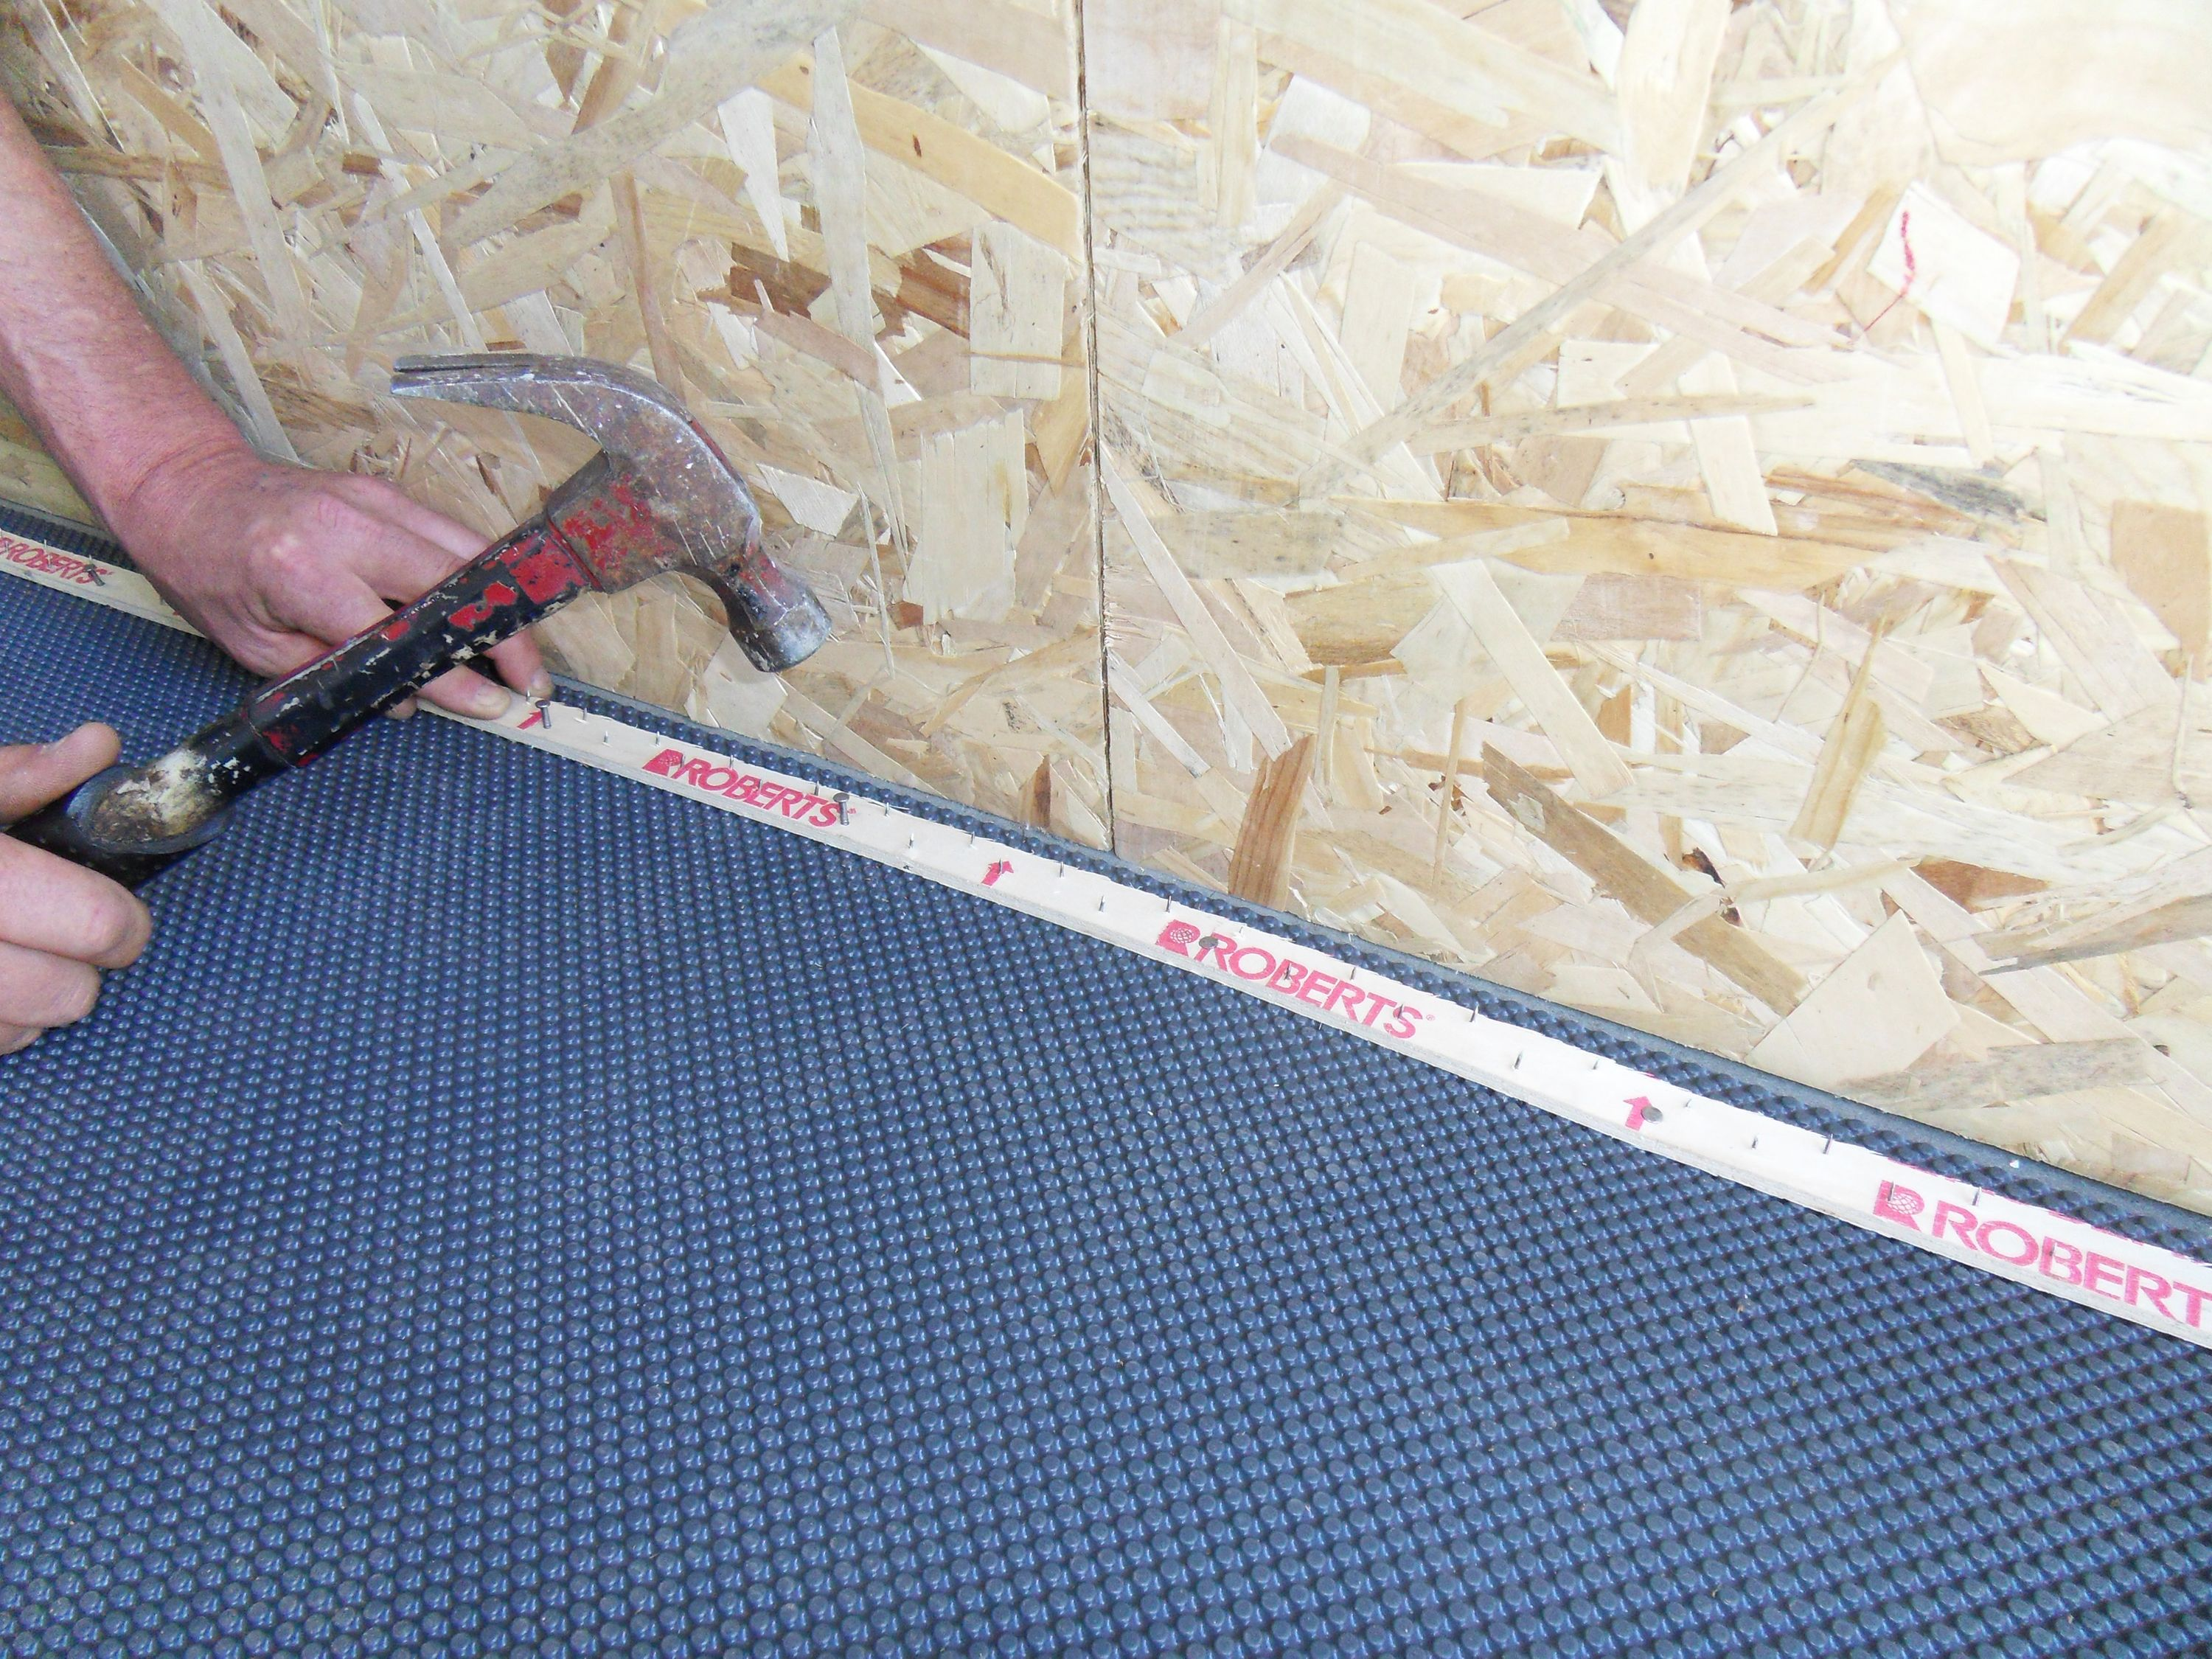 Superseal S Carpet Subfloor Membrane Installing Tack Strip Tack Strips Can Be Nailed Through The Membrane Membrane Carpet Installation